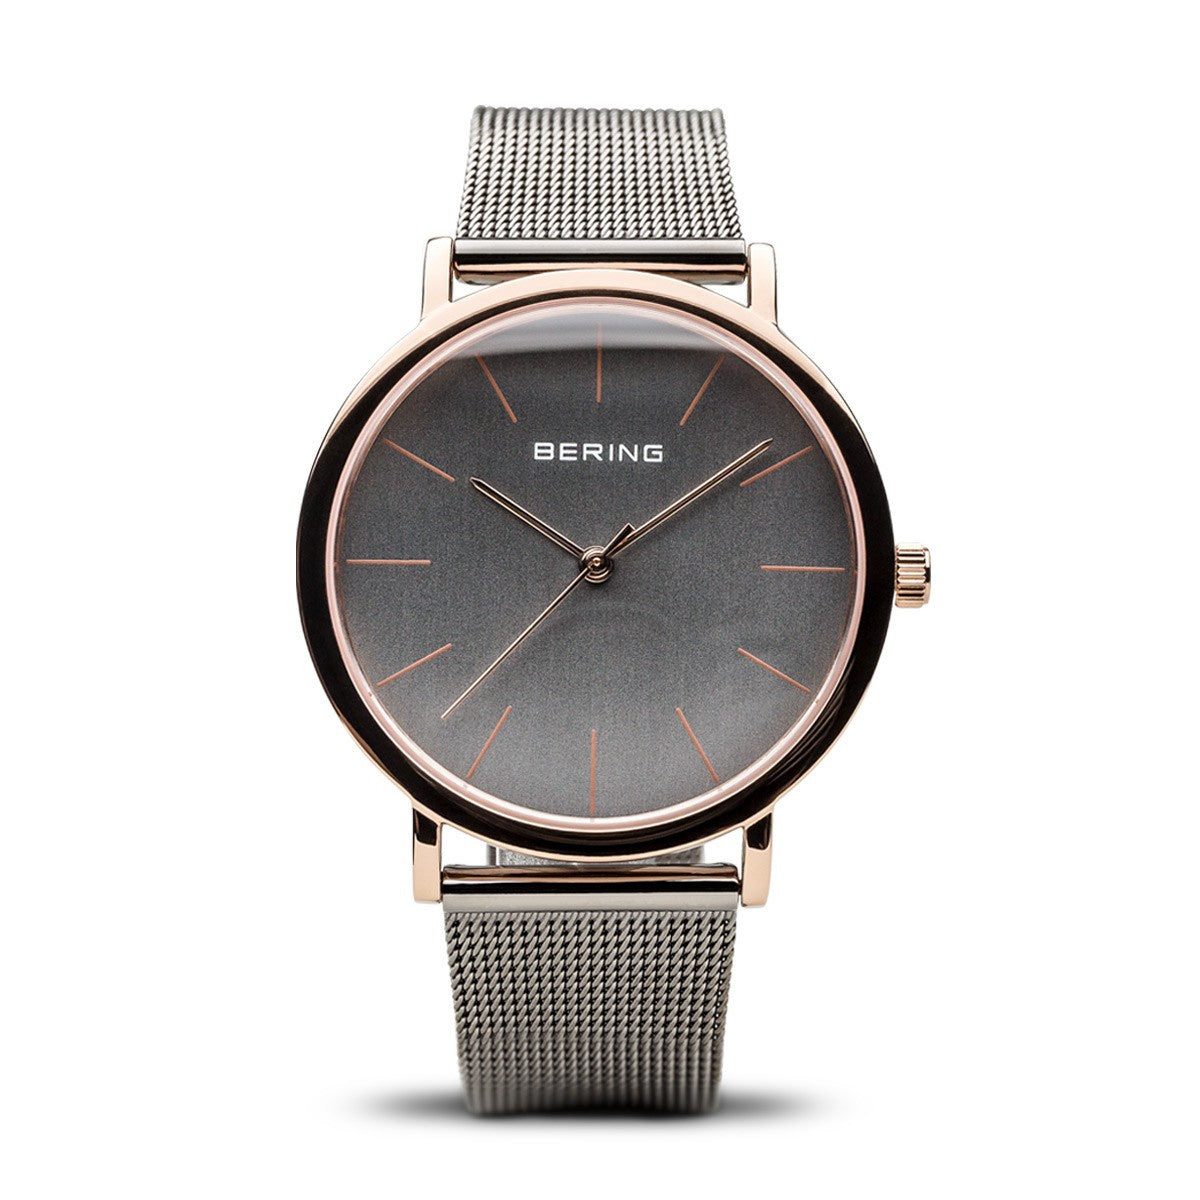 Bering Unisex Classic Polished Rose Gold Watch 13436-369 - Robert Openshaw Fine Jewellery